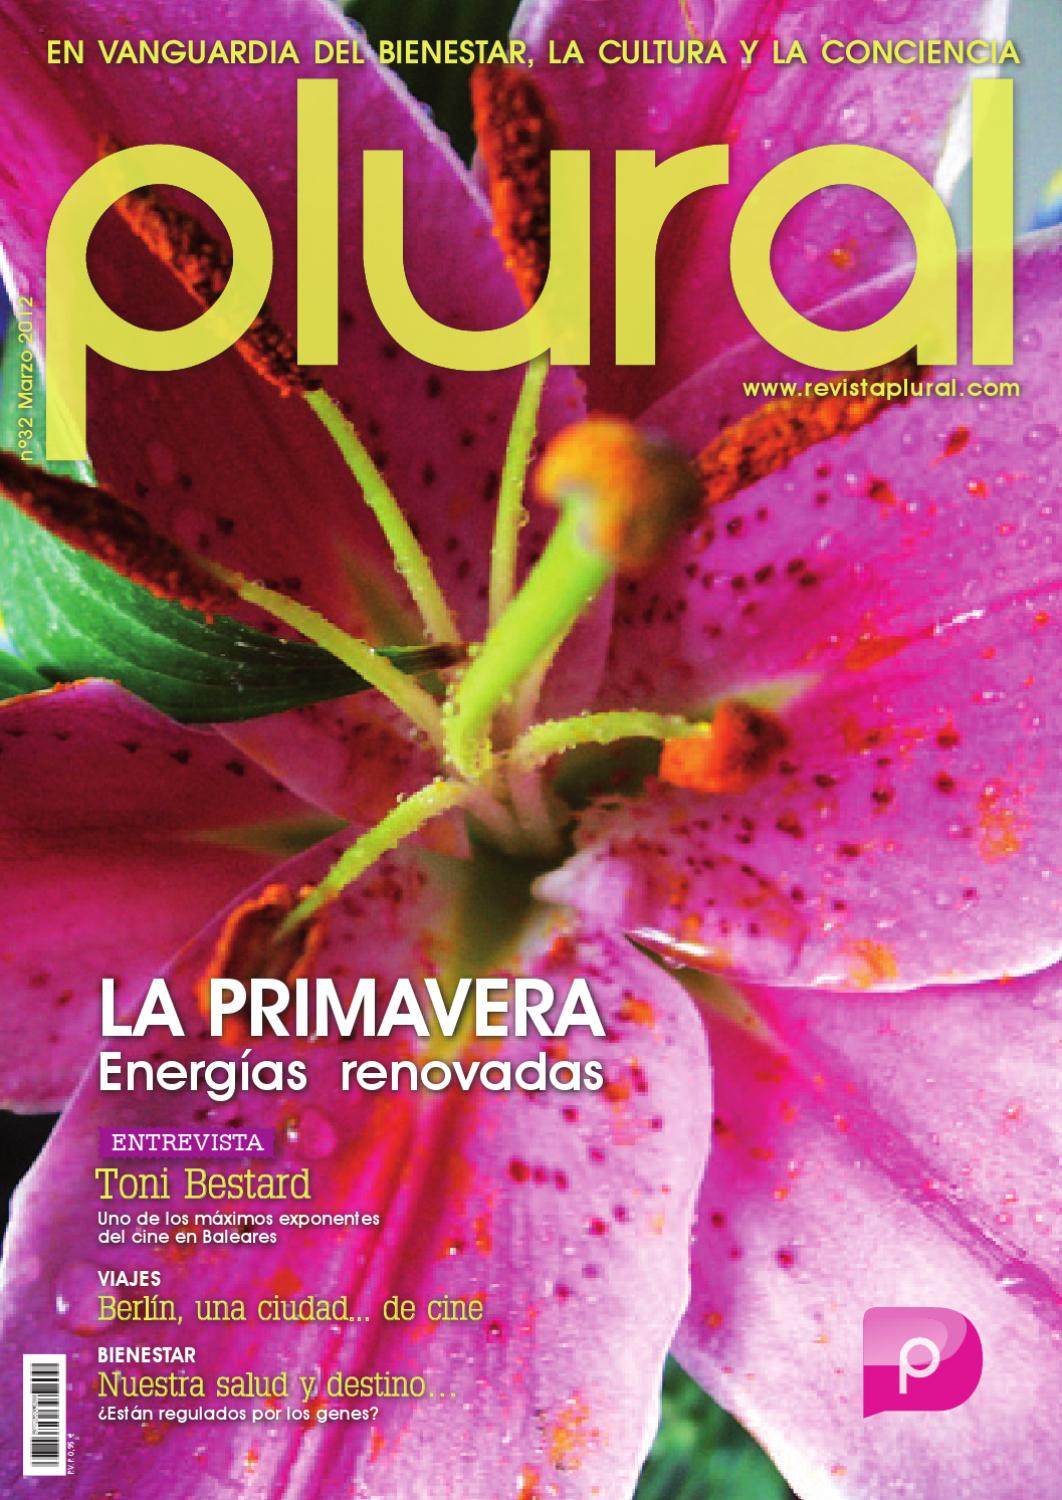 PLURAL MARZO 2012 by Xisco Plural - issuu 9106a9b59d1f